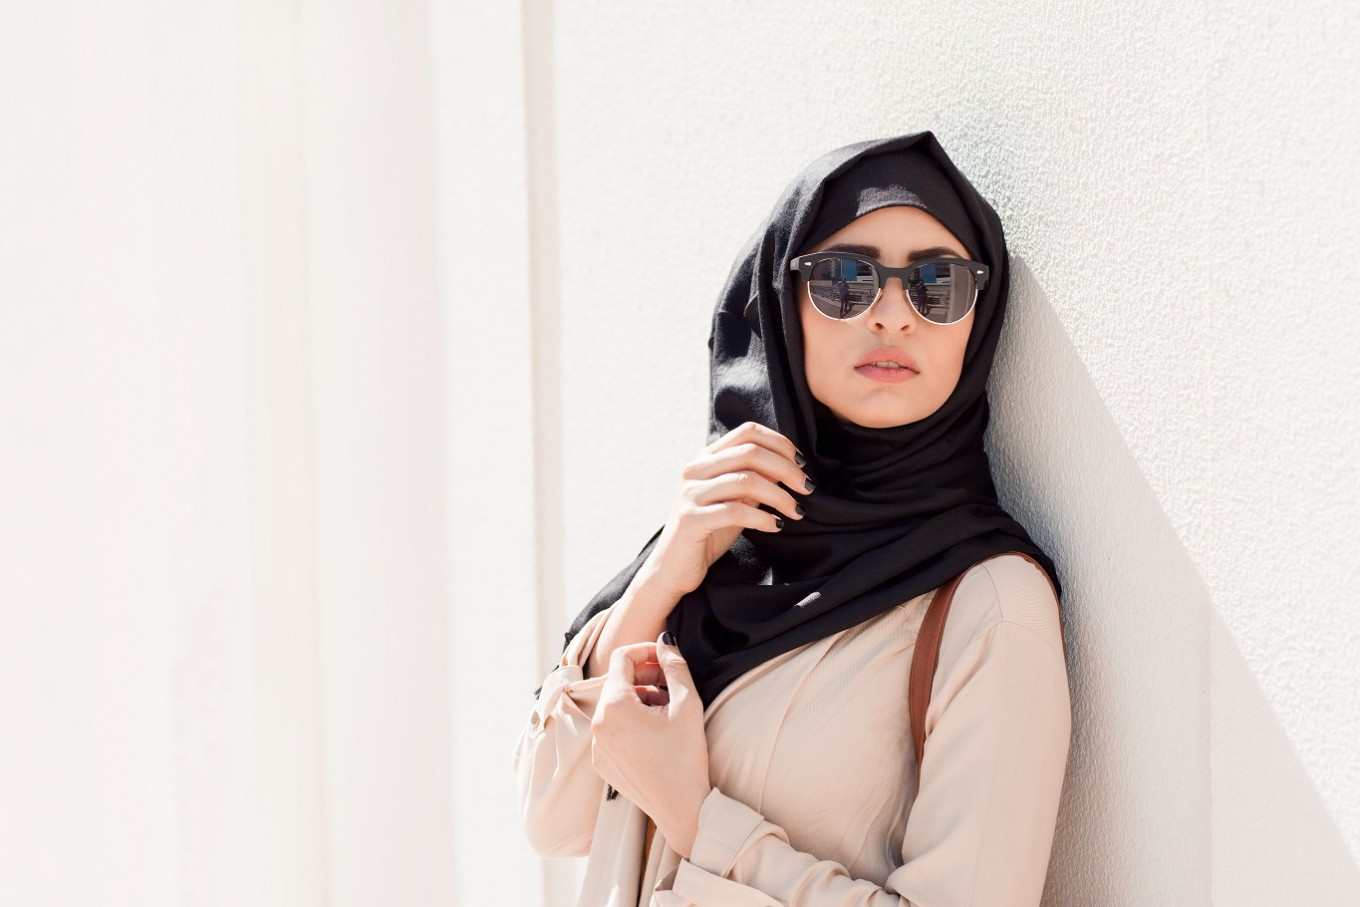 Global hijabista style, from the Afghan burqa to the cover of a fashion magazine